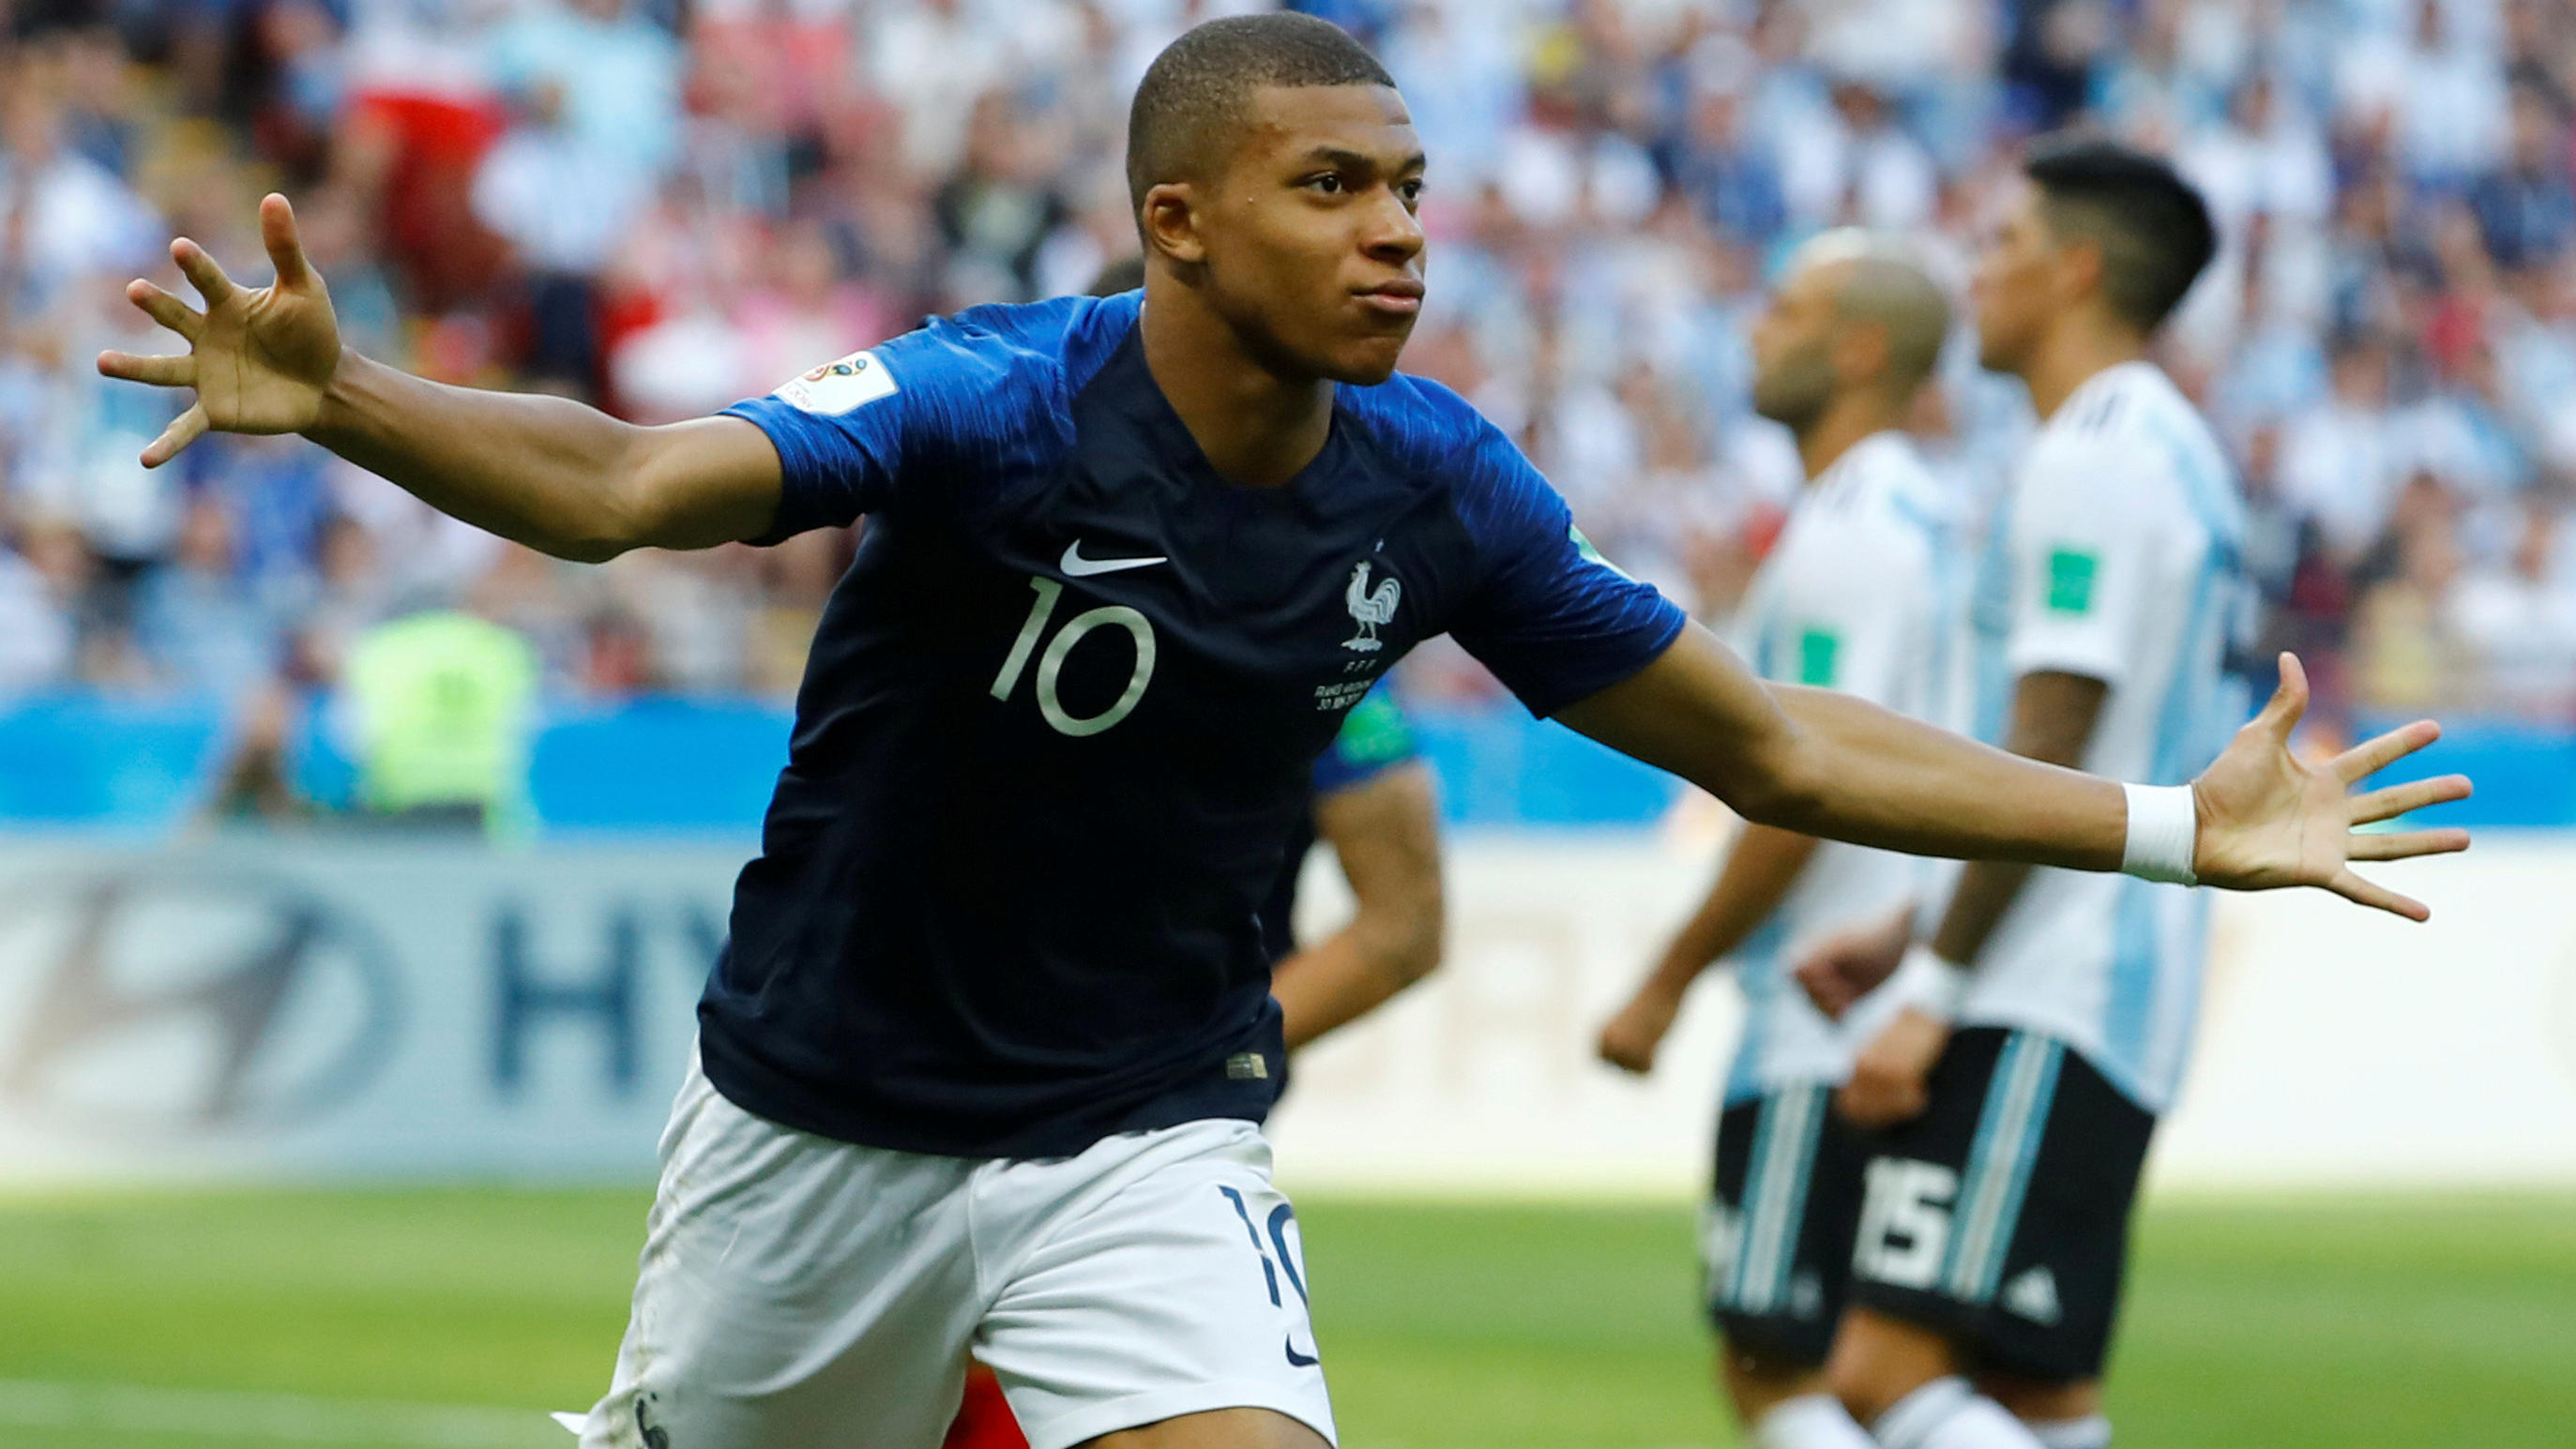 FILE PHOTO: World Cup - Round of 16 - France vs Argentina - Kazan Arena, Kazan, Russia - June 30, 2018  France's Kylian Mbappe celebrates scoring their third goal   REUTERS/Michael Dalder/File Photo